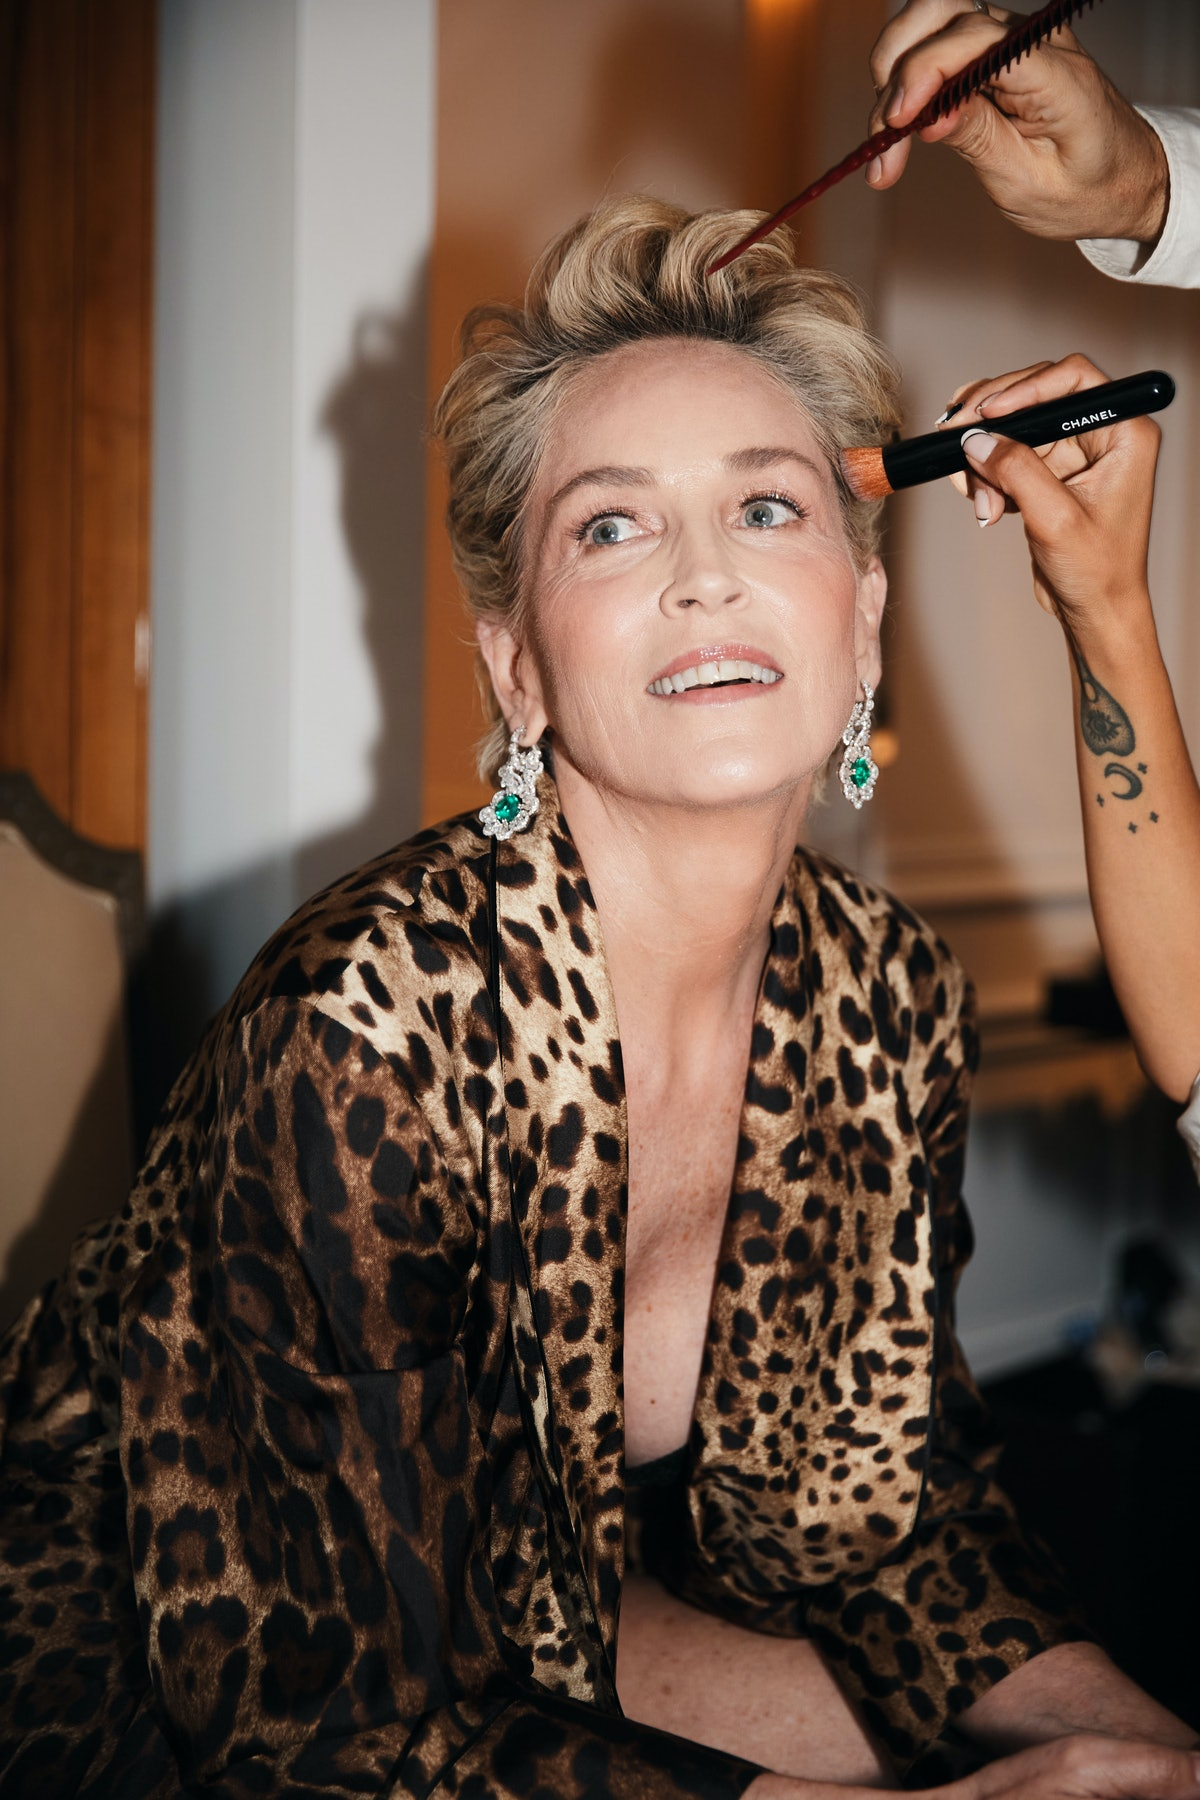 Sharon Stone prepping for the 2021 Met Gala, her first